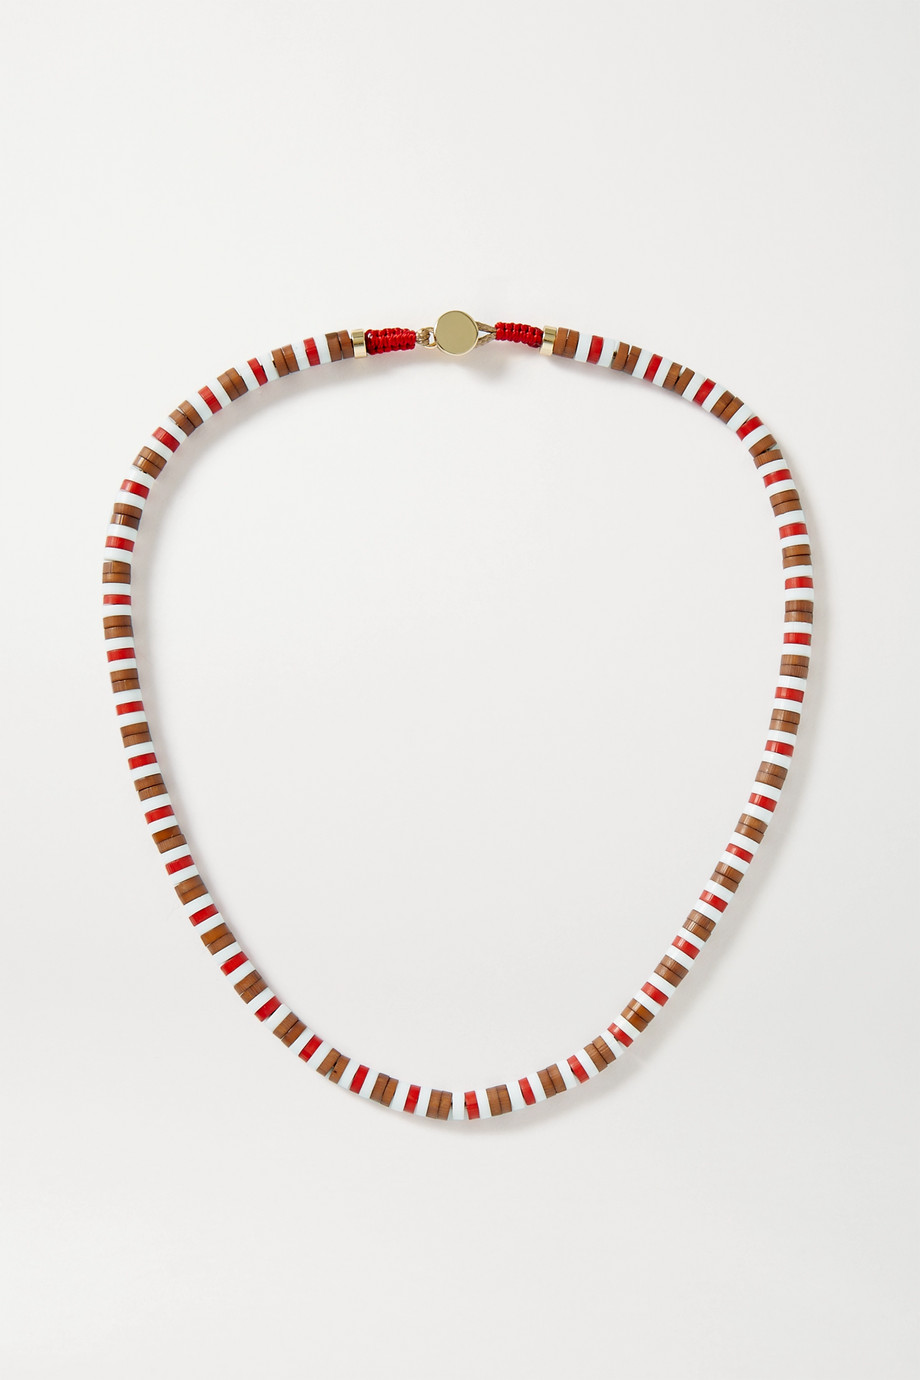 Roxanne Assoulin U-Tube wood necklace